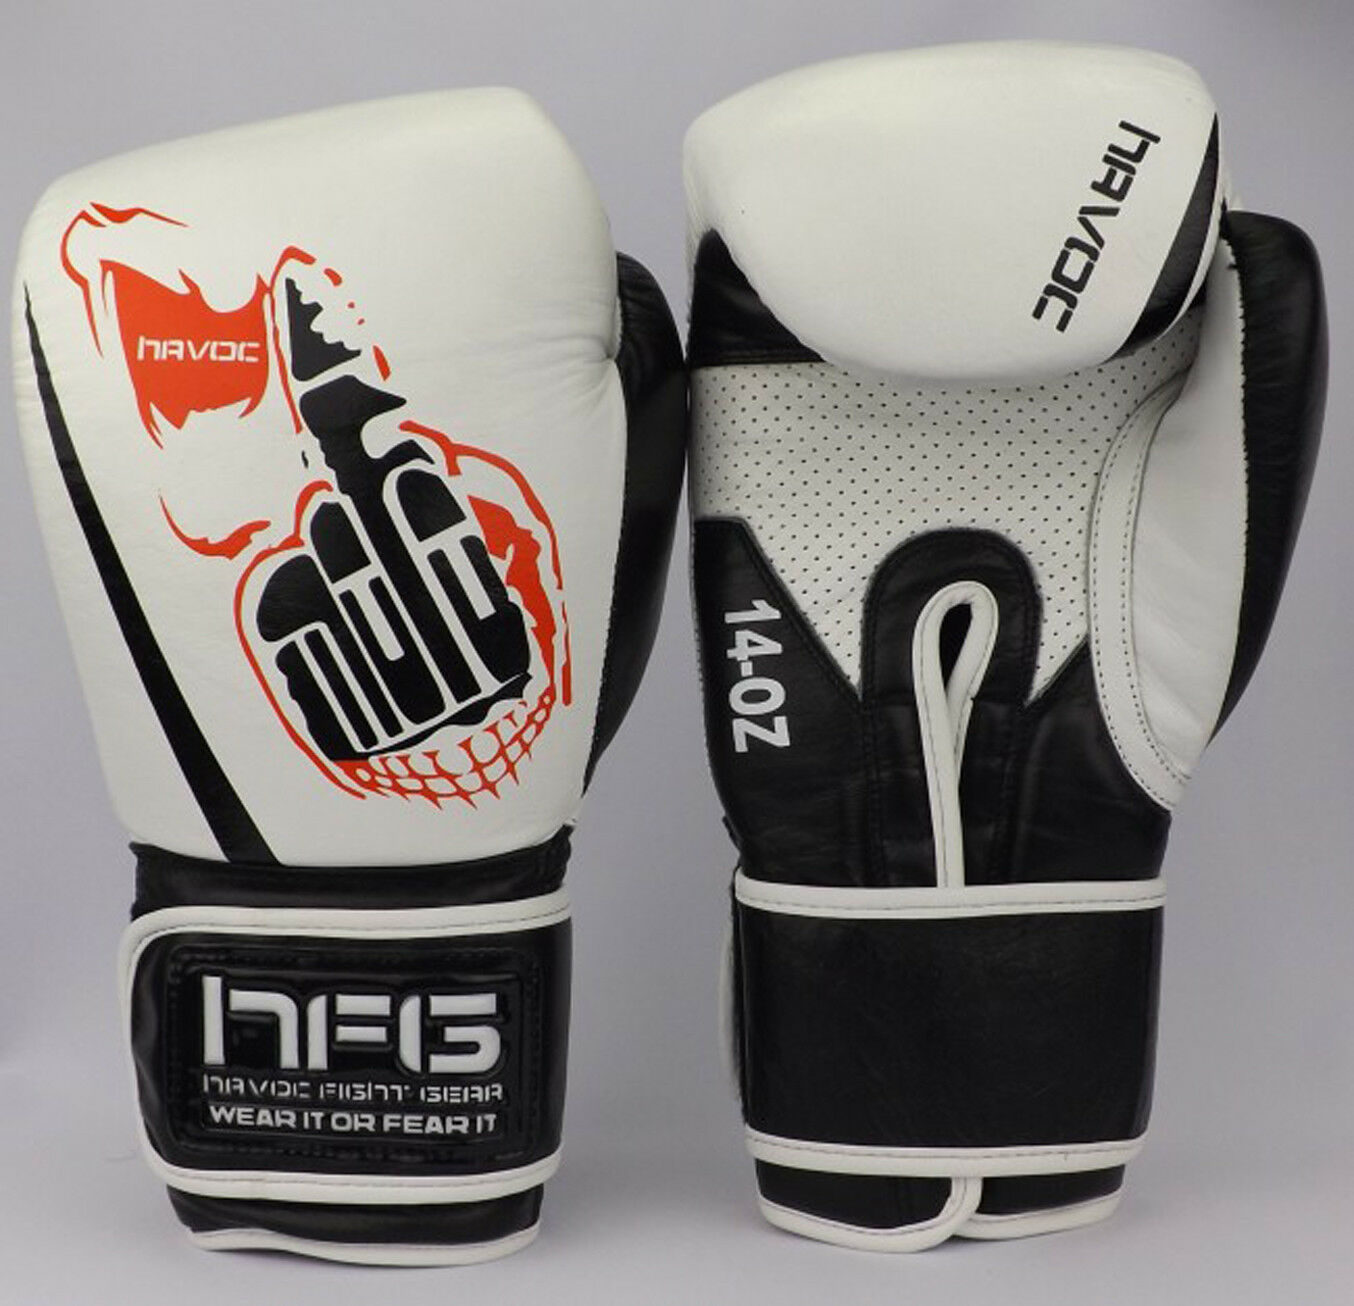 Havoc 4m Fighters Hand Wraps Bandages Boxing Mexican Gloves Muay Thai MMA Cotton